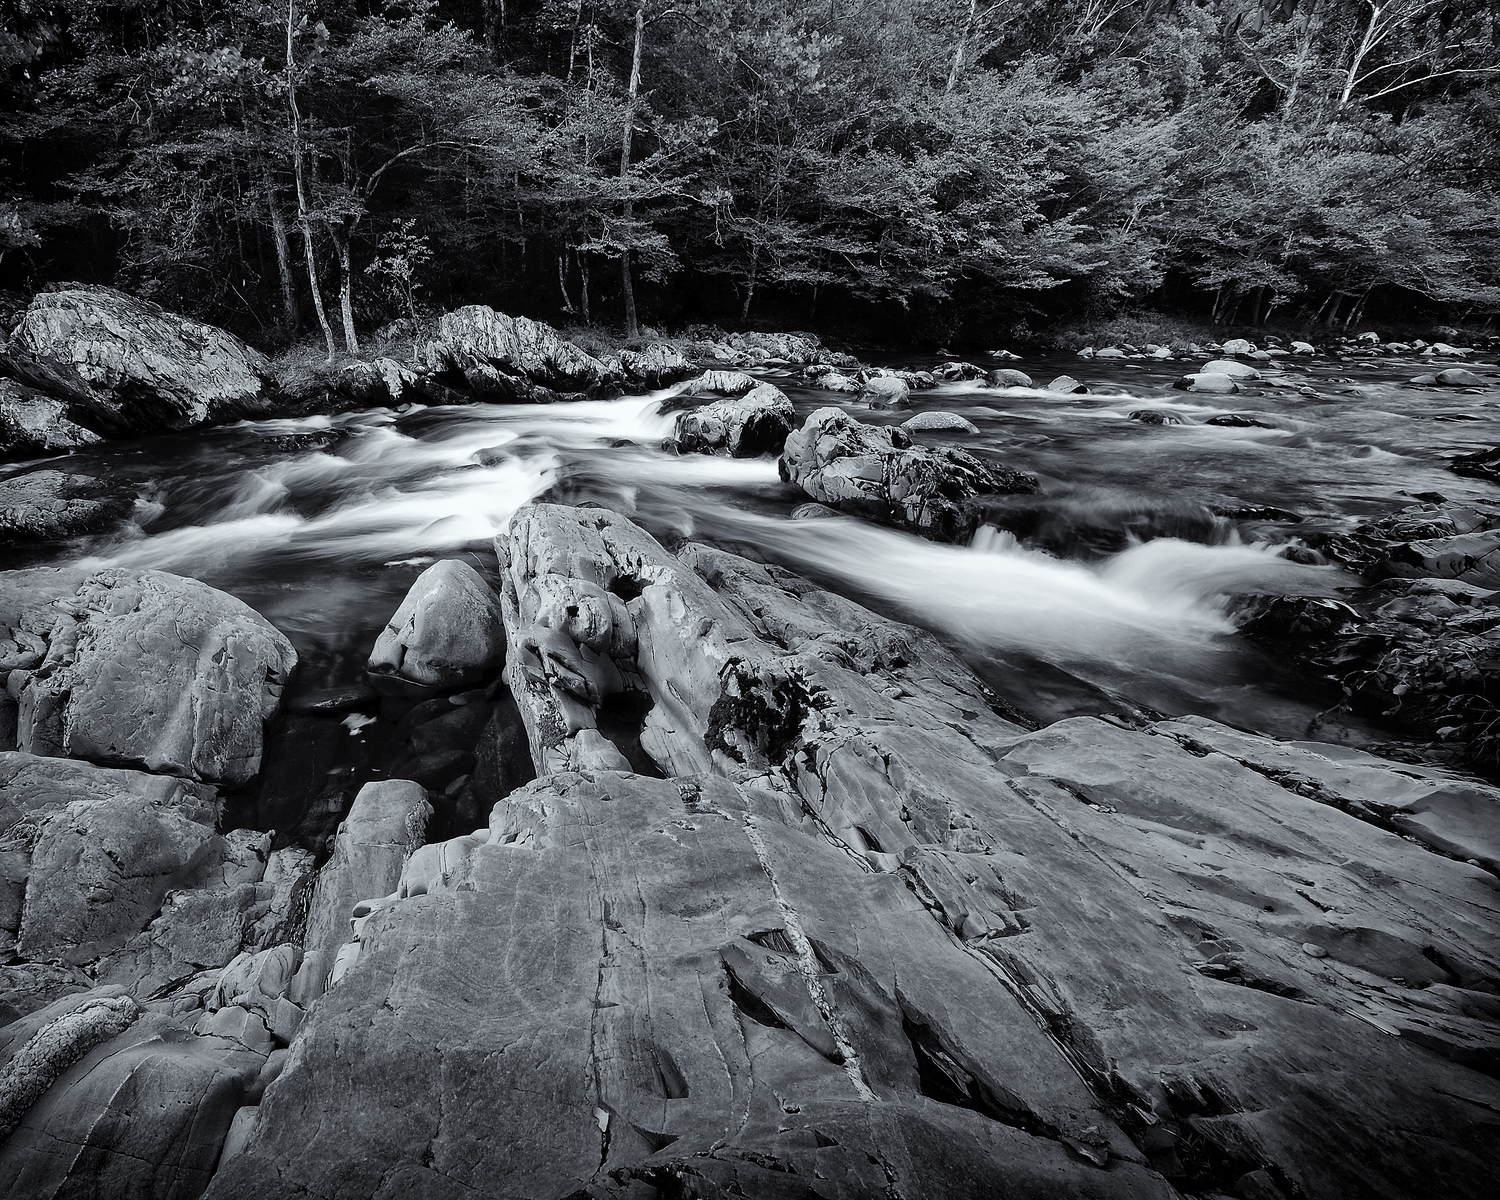 Pigeon River, Smoky Mountain National Park, Tennessee